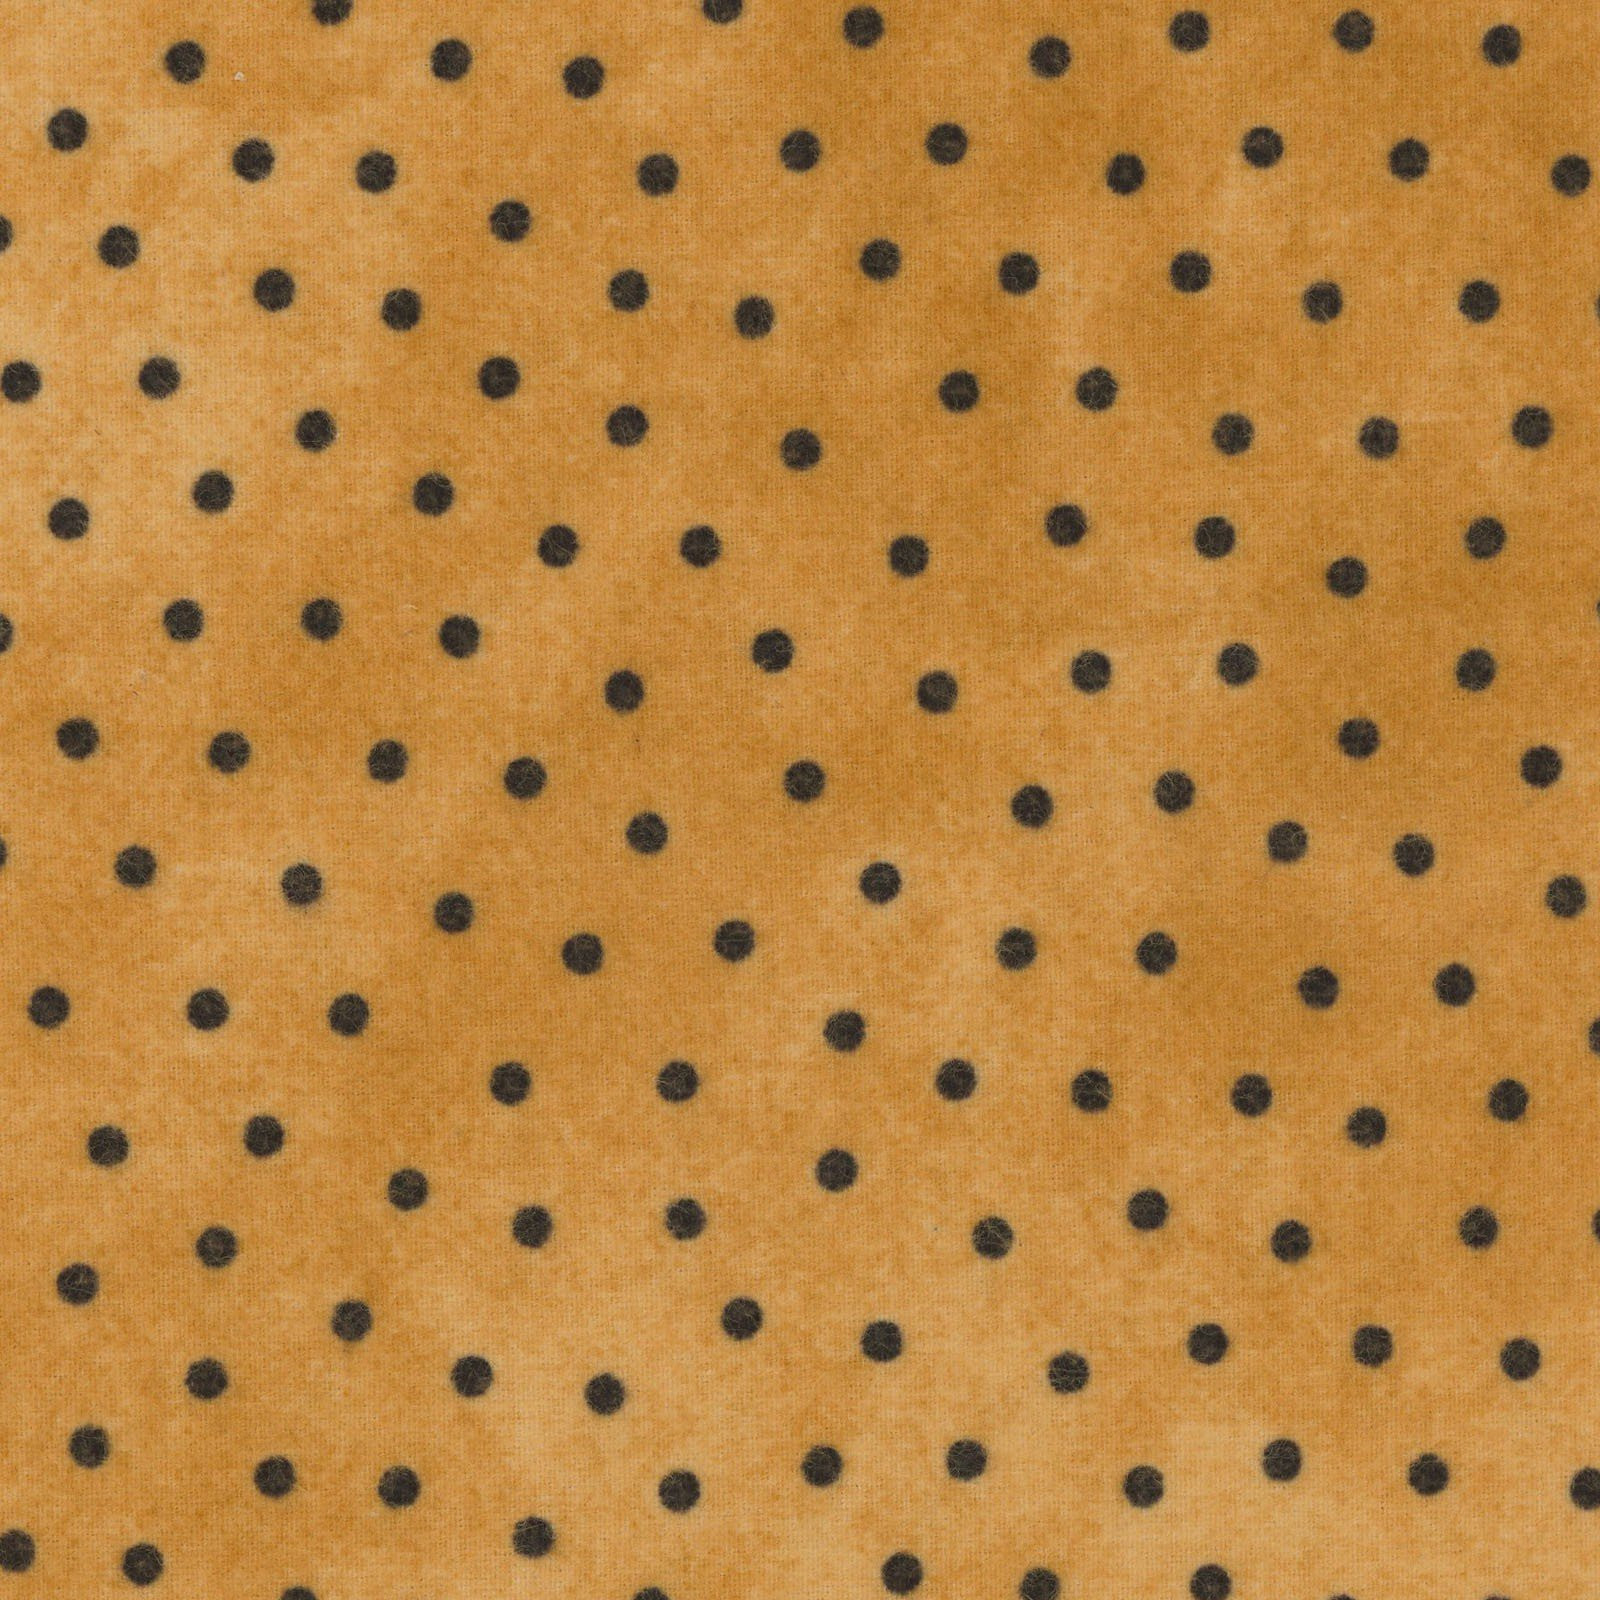 Woolies Flannel Polka Dots Sunny Gold Yellow (MASF18506-S)